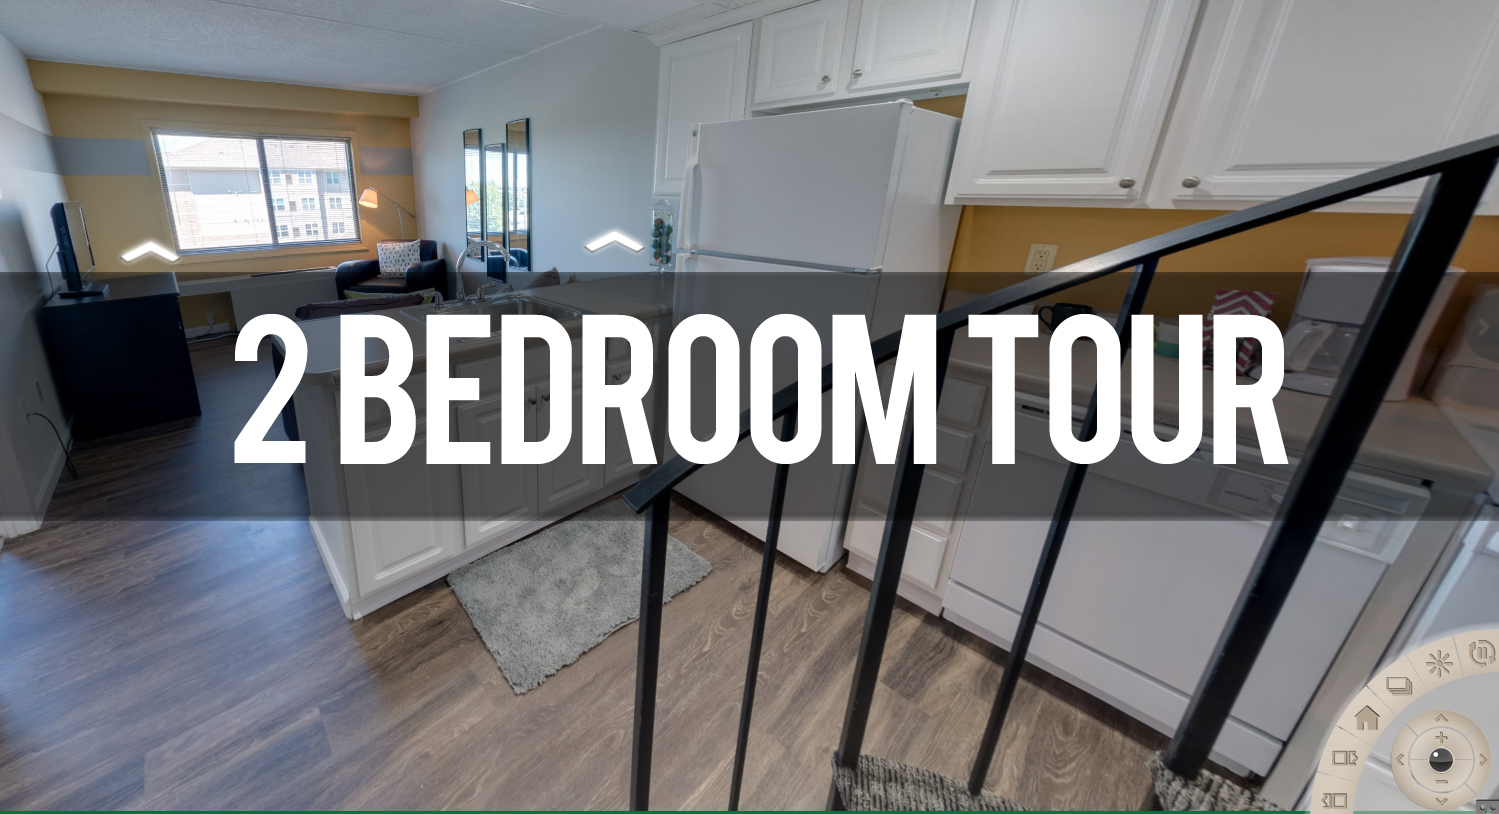 Take a Virtual Tour of 2 Bedroom at the Oaks